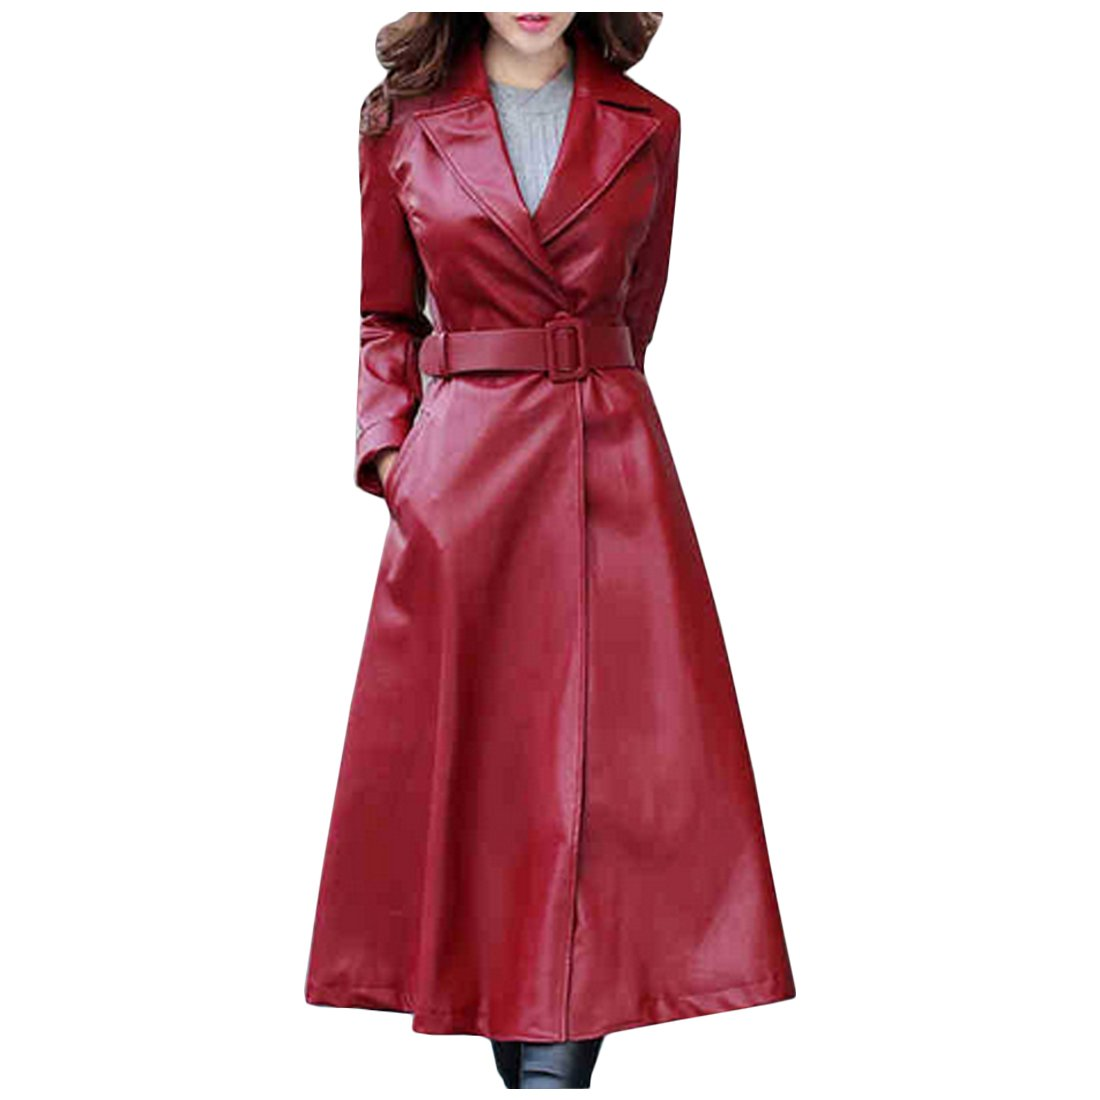 Partiss Women's Extra Long PU Leather Jacket Longline Winter Fall Warm Overcoat